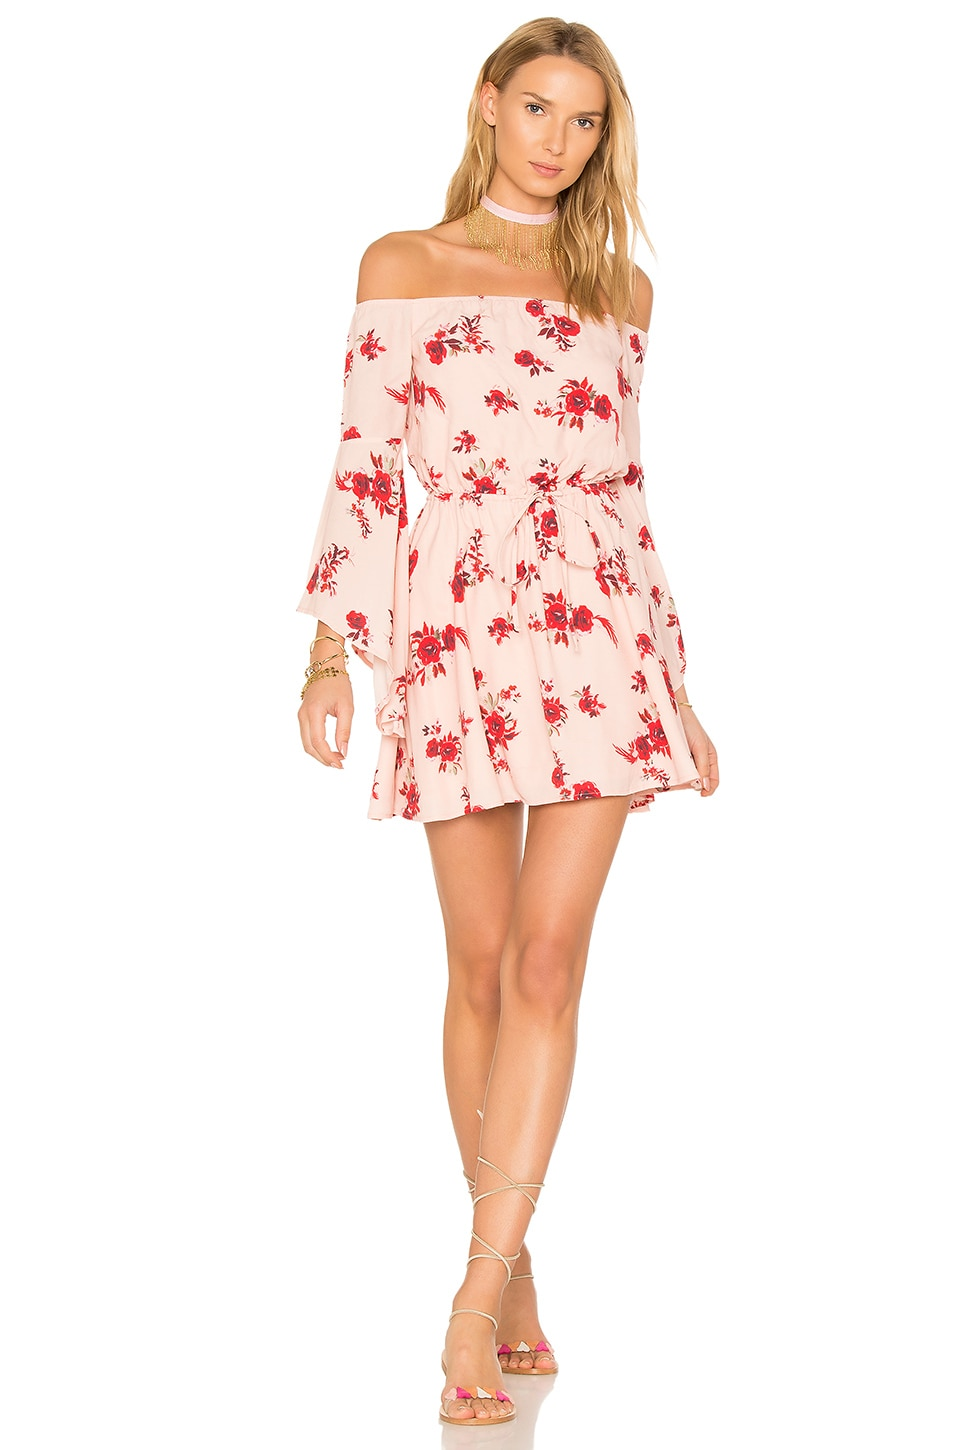 Lovers + Friends Stay Dress in Blossom Print